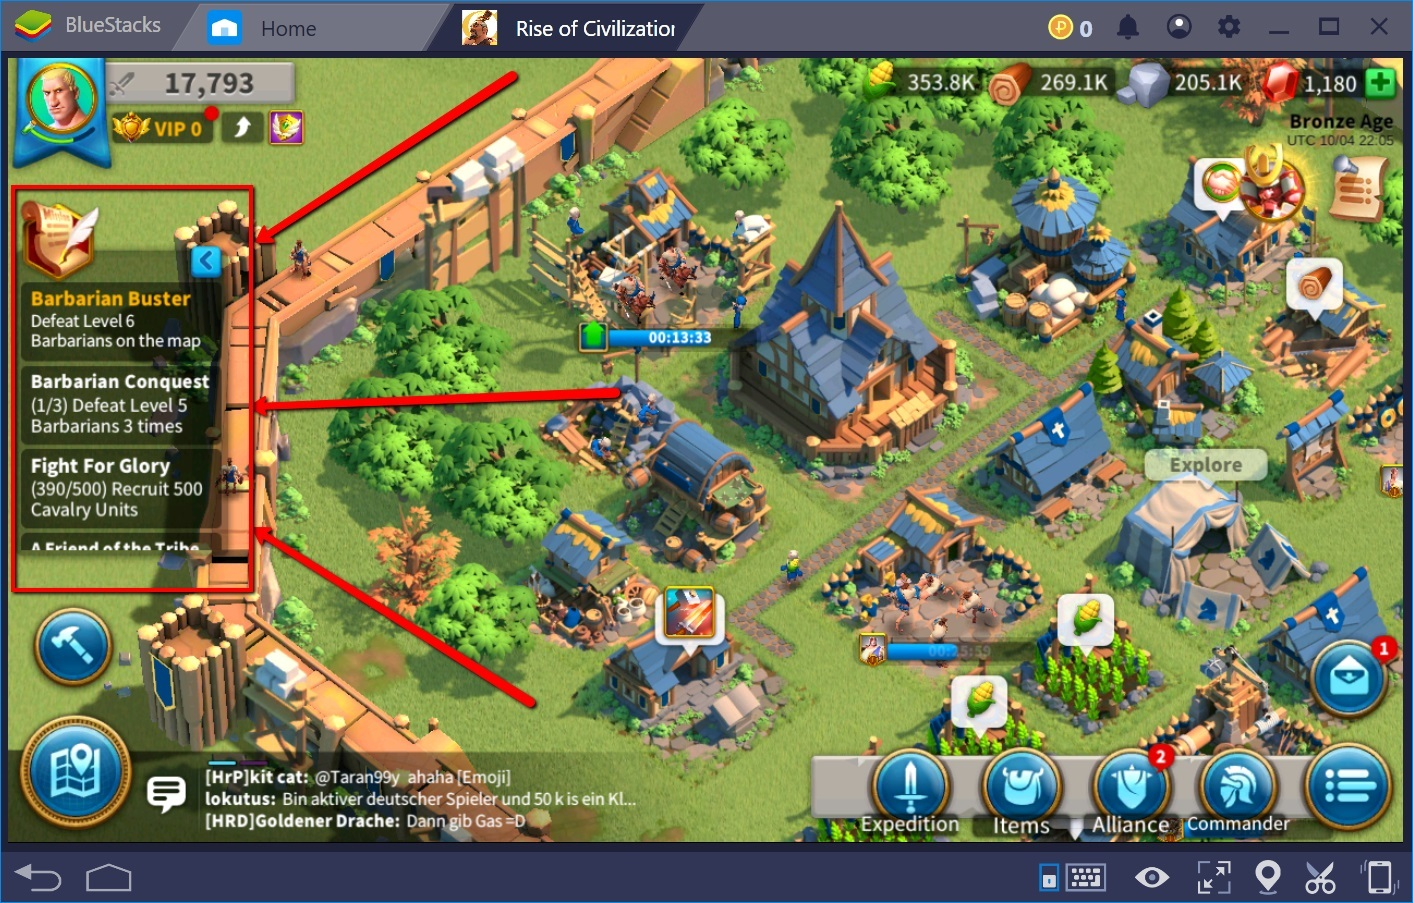 Best Tips and Tricks for Rise of Kingdoms | BlueStacks 4